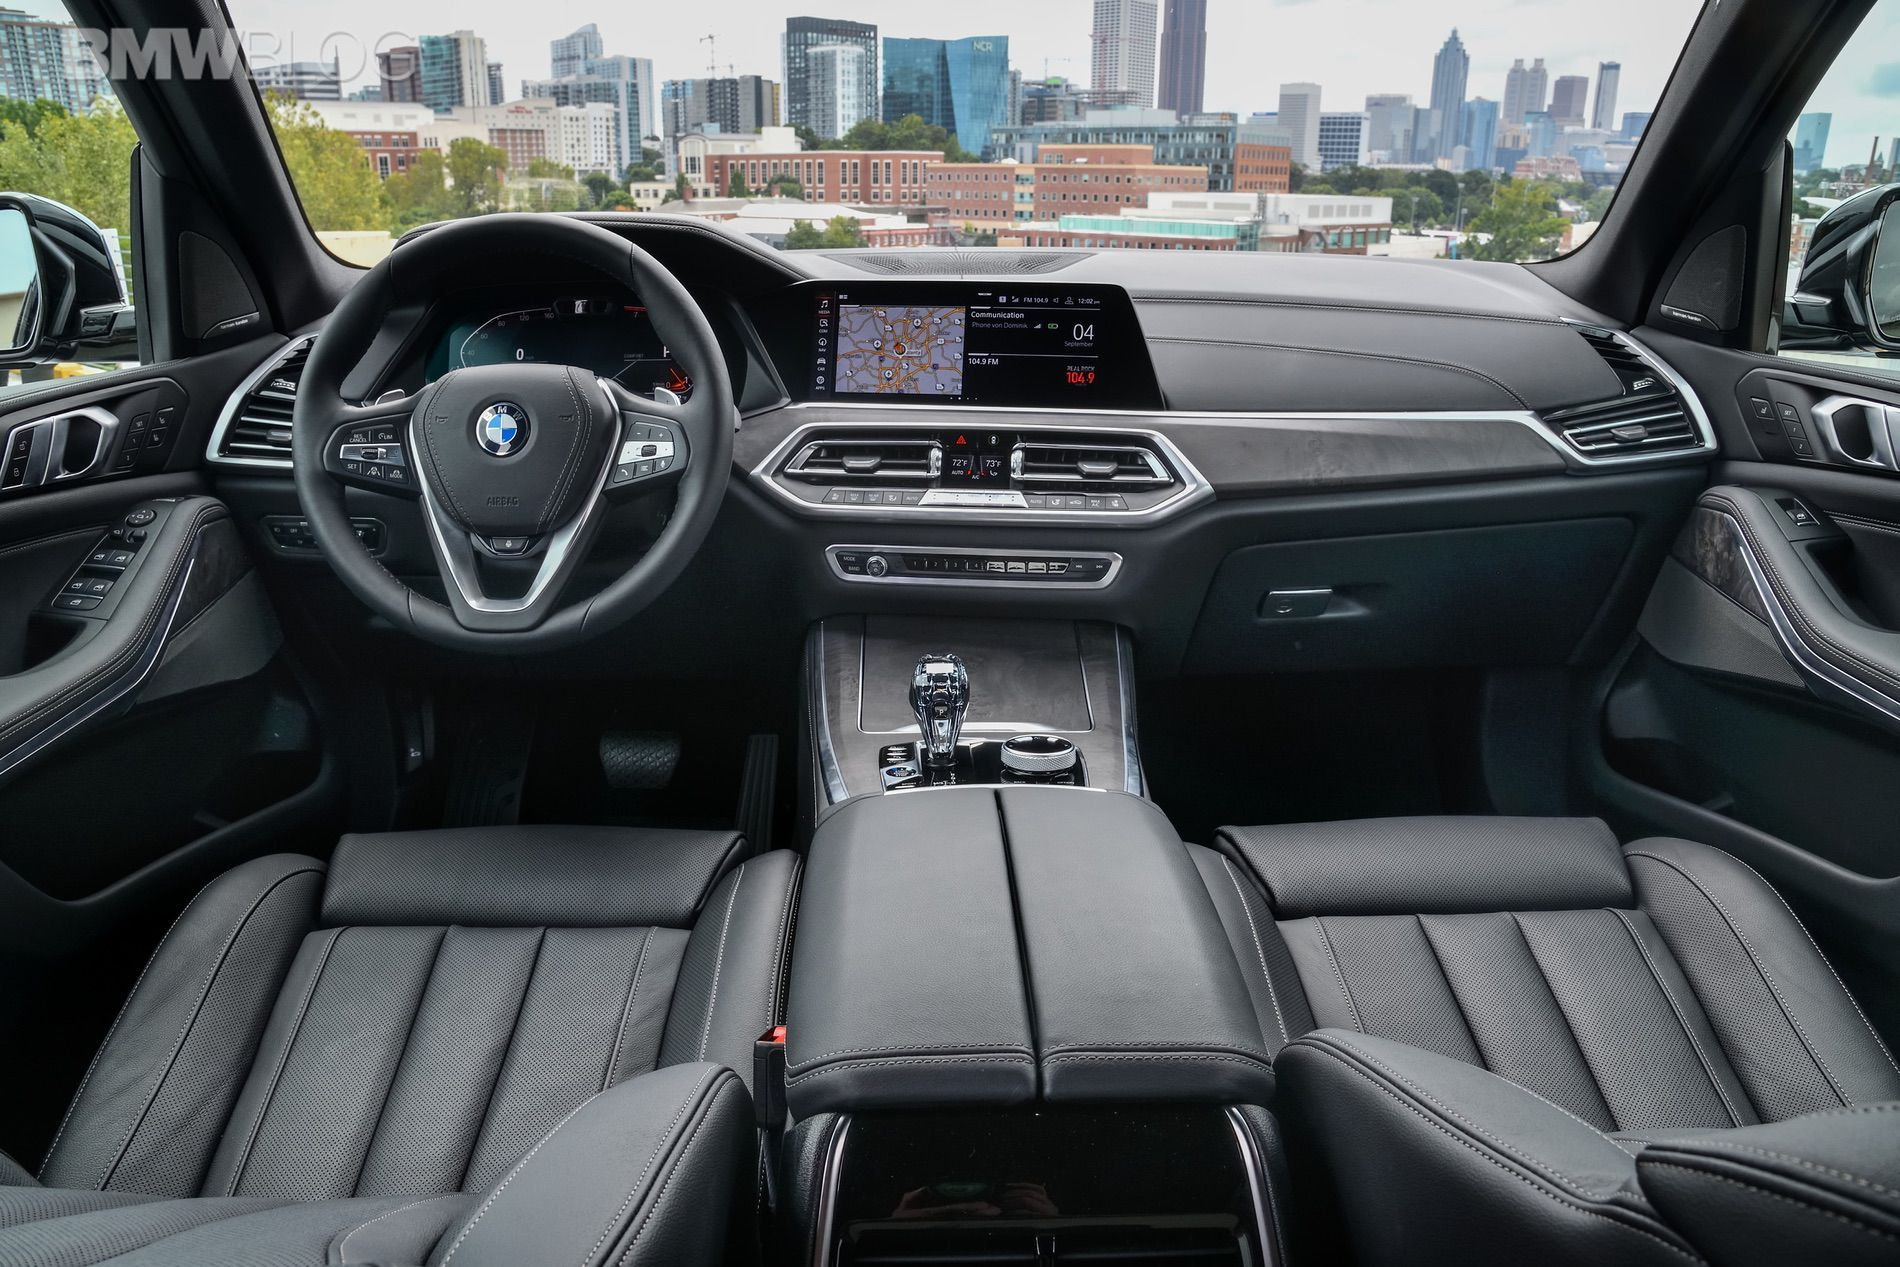 Check out exclusive images of the bmw x5. Bmw Designer Describes The Interior Design Of The New Bmw X5 Bmw Interior Bmw Suv Bmw X5